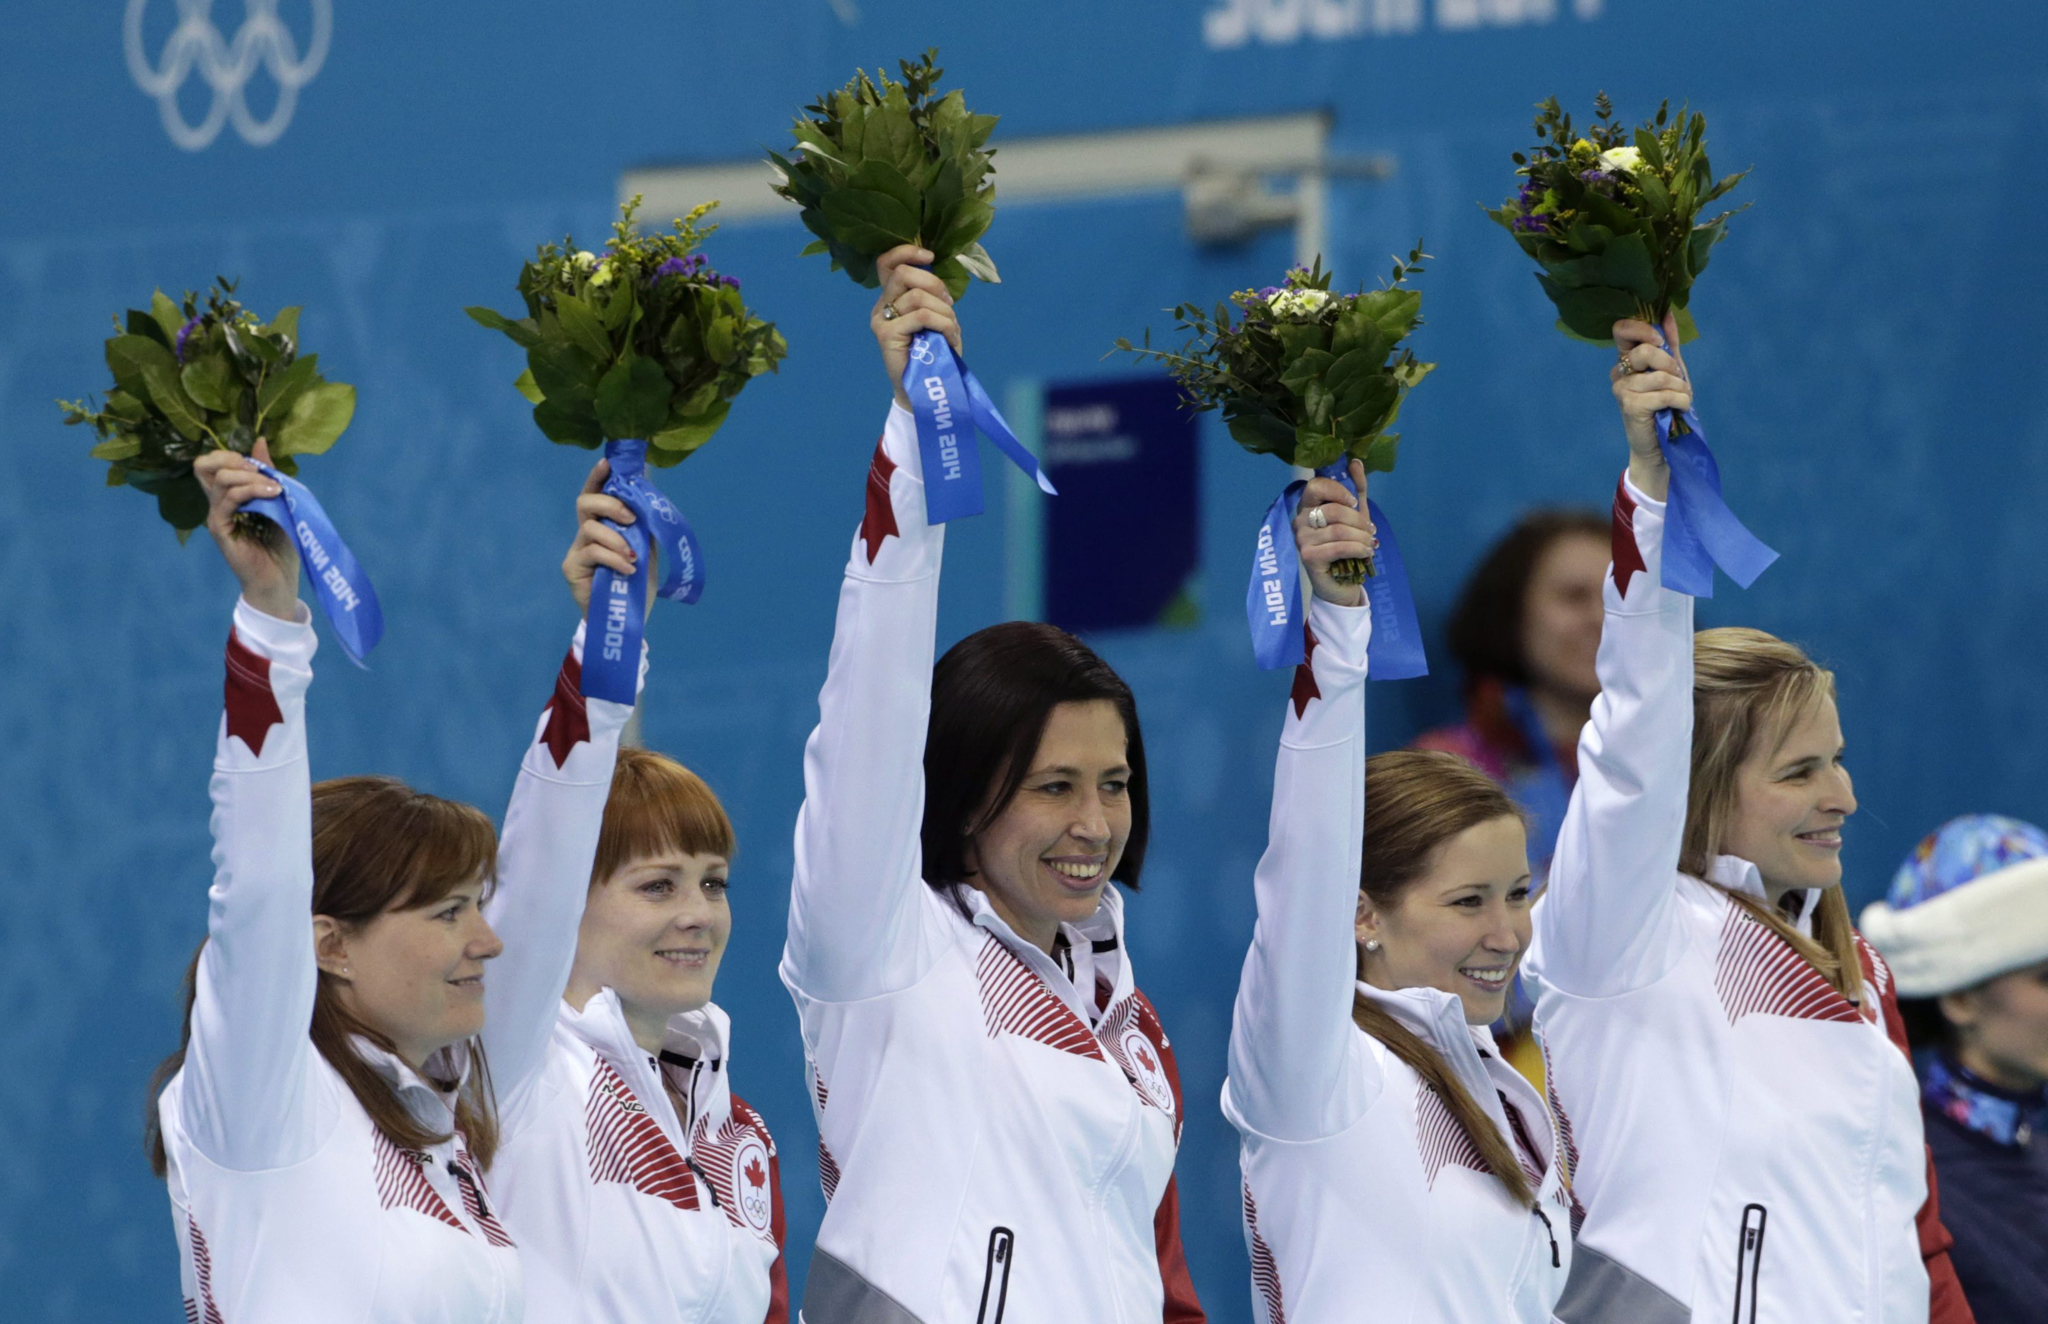 Canada's gold medal winning curling team, from left, Kirsten Wall, Dawn McEwen, Jill Officer, Kaitlyn Lawes, and skip Jennifer Jones raise their arms during the flower ceremony today after defeating Sweden in women's curling at the 2014 Winter Olympics in Sochi, Russia.